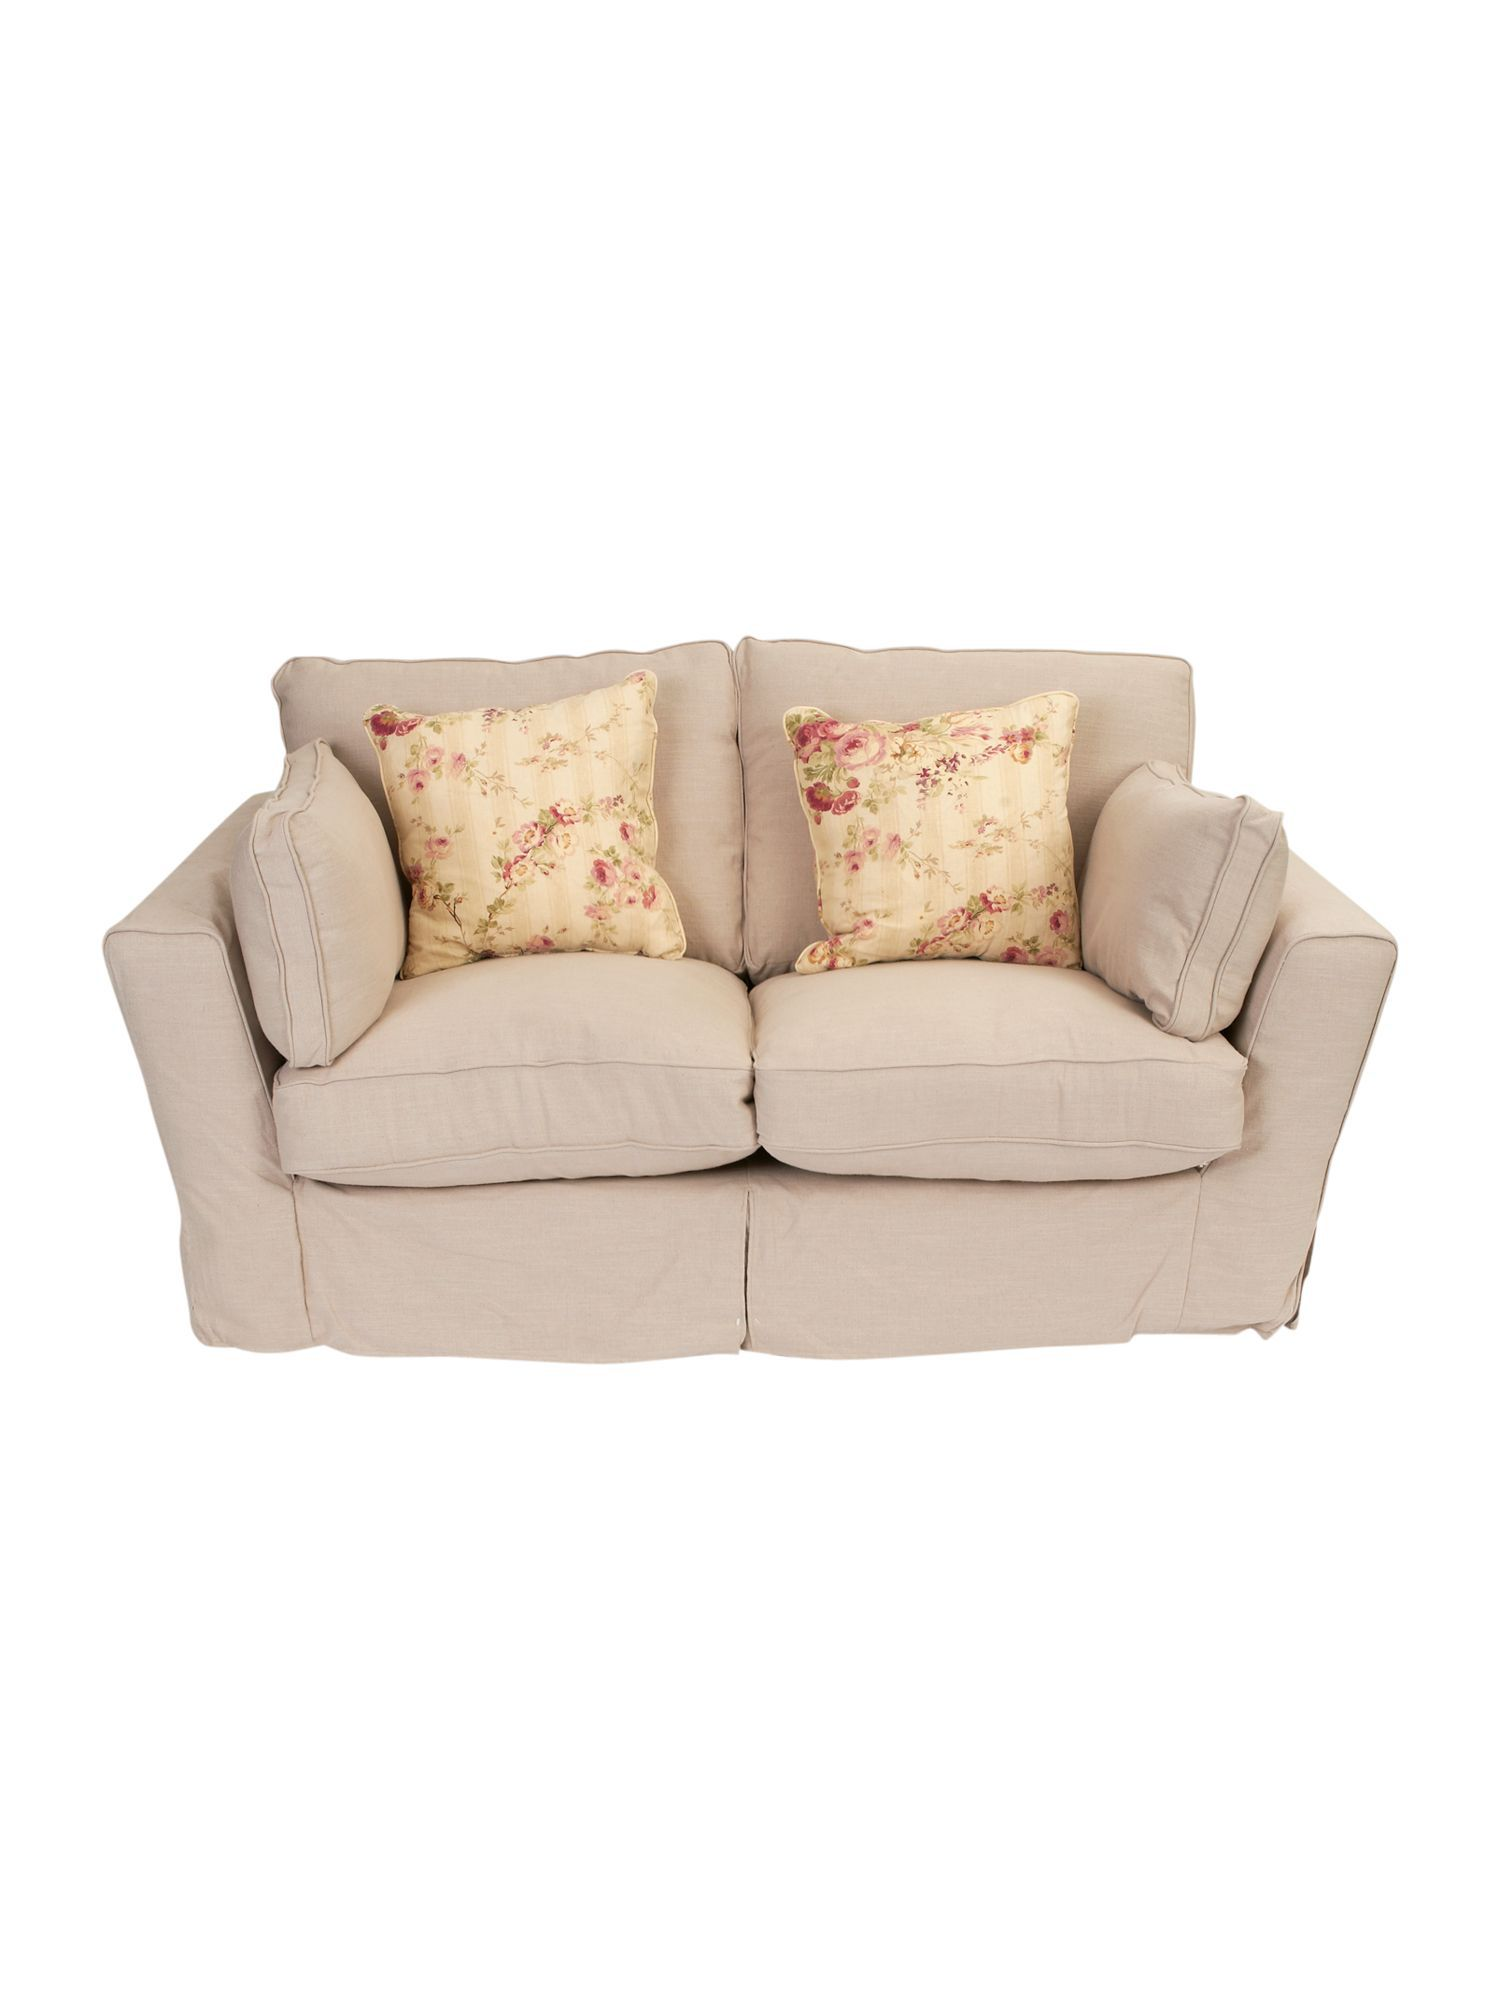 Shabby Chic Relax Small Sofa